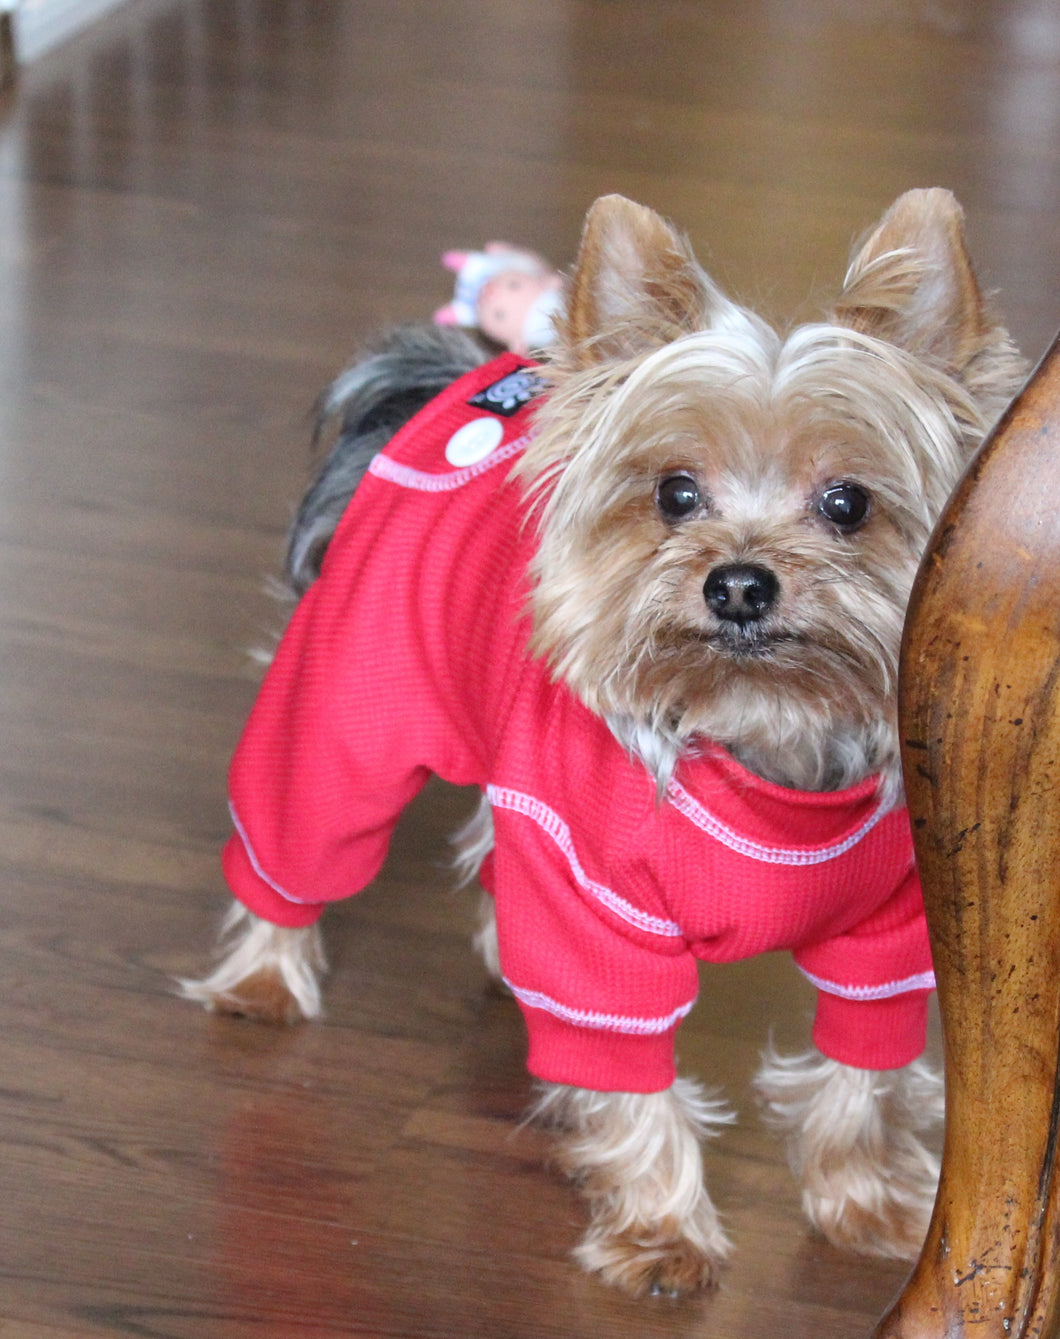 597061f36164 Cozy Thermal Dog Pajamas in Red – Dasch the Dog - Good Dog Mania